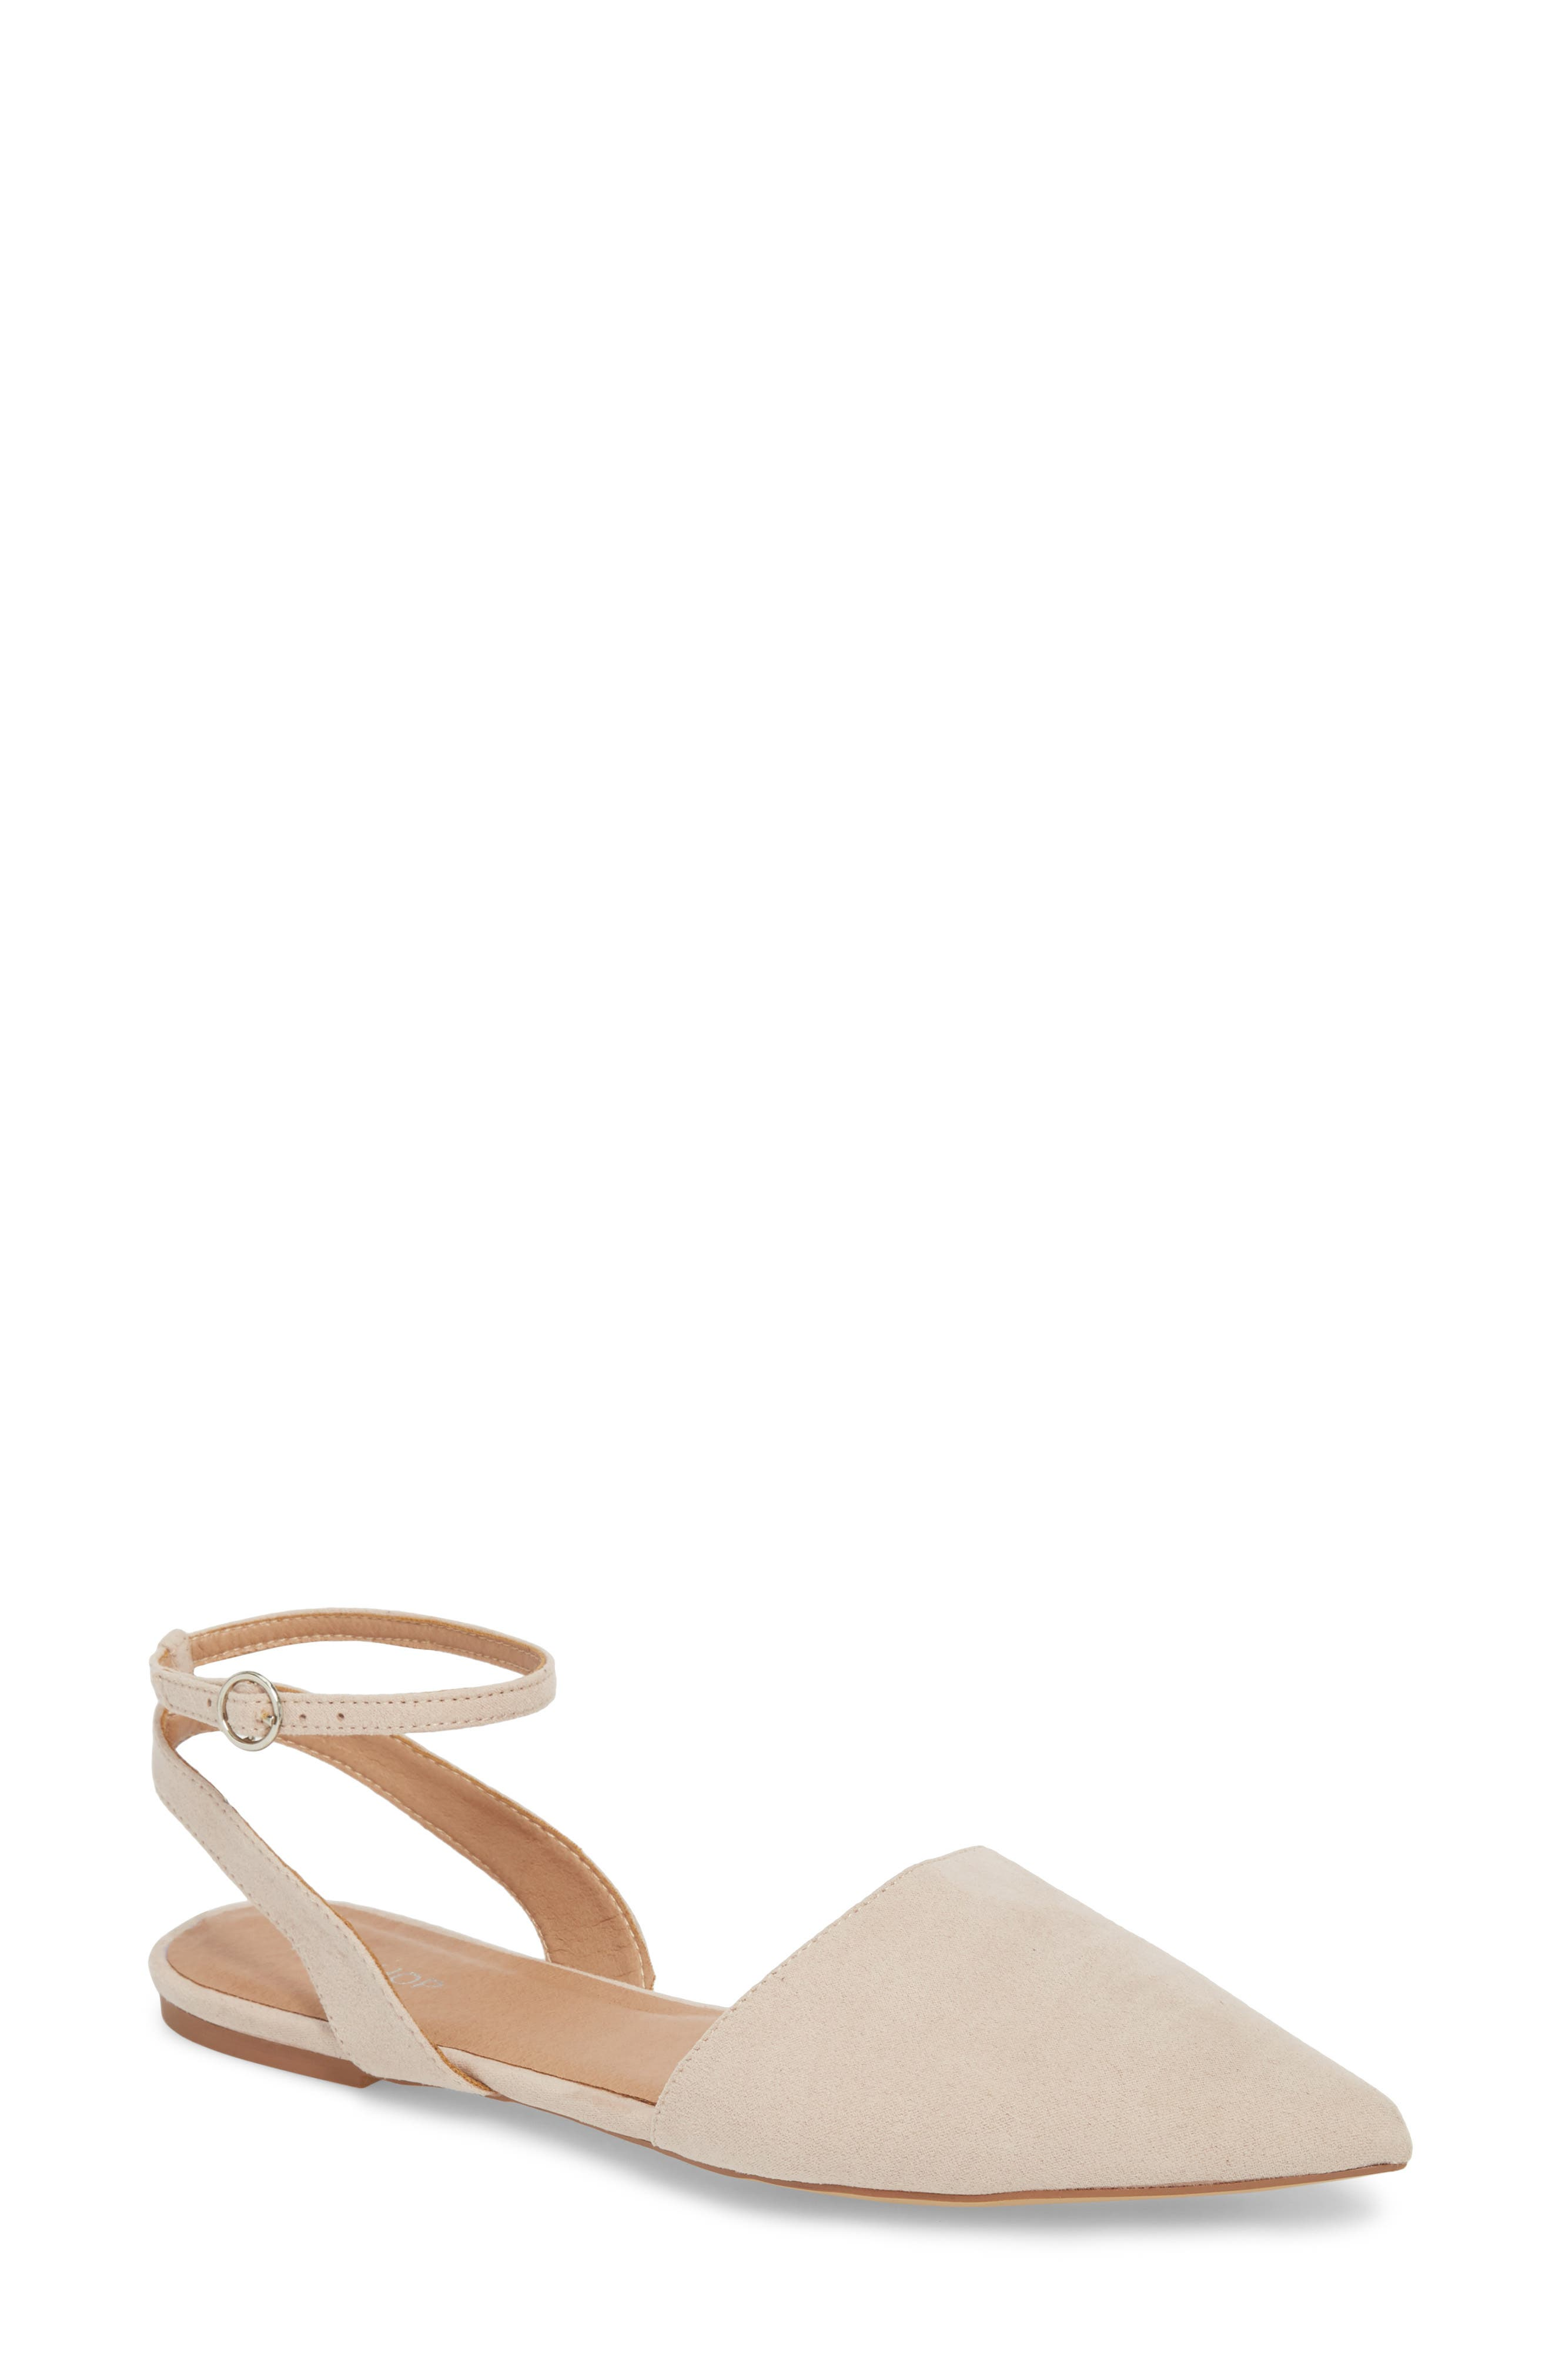 Anne Pointy Toe Flat,                         Main,                         color, NUDE